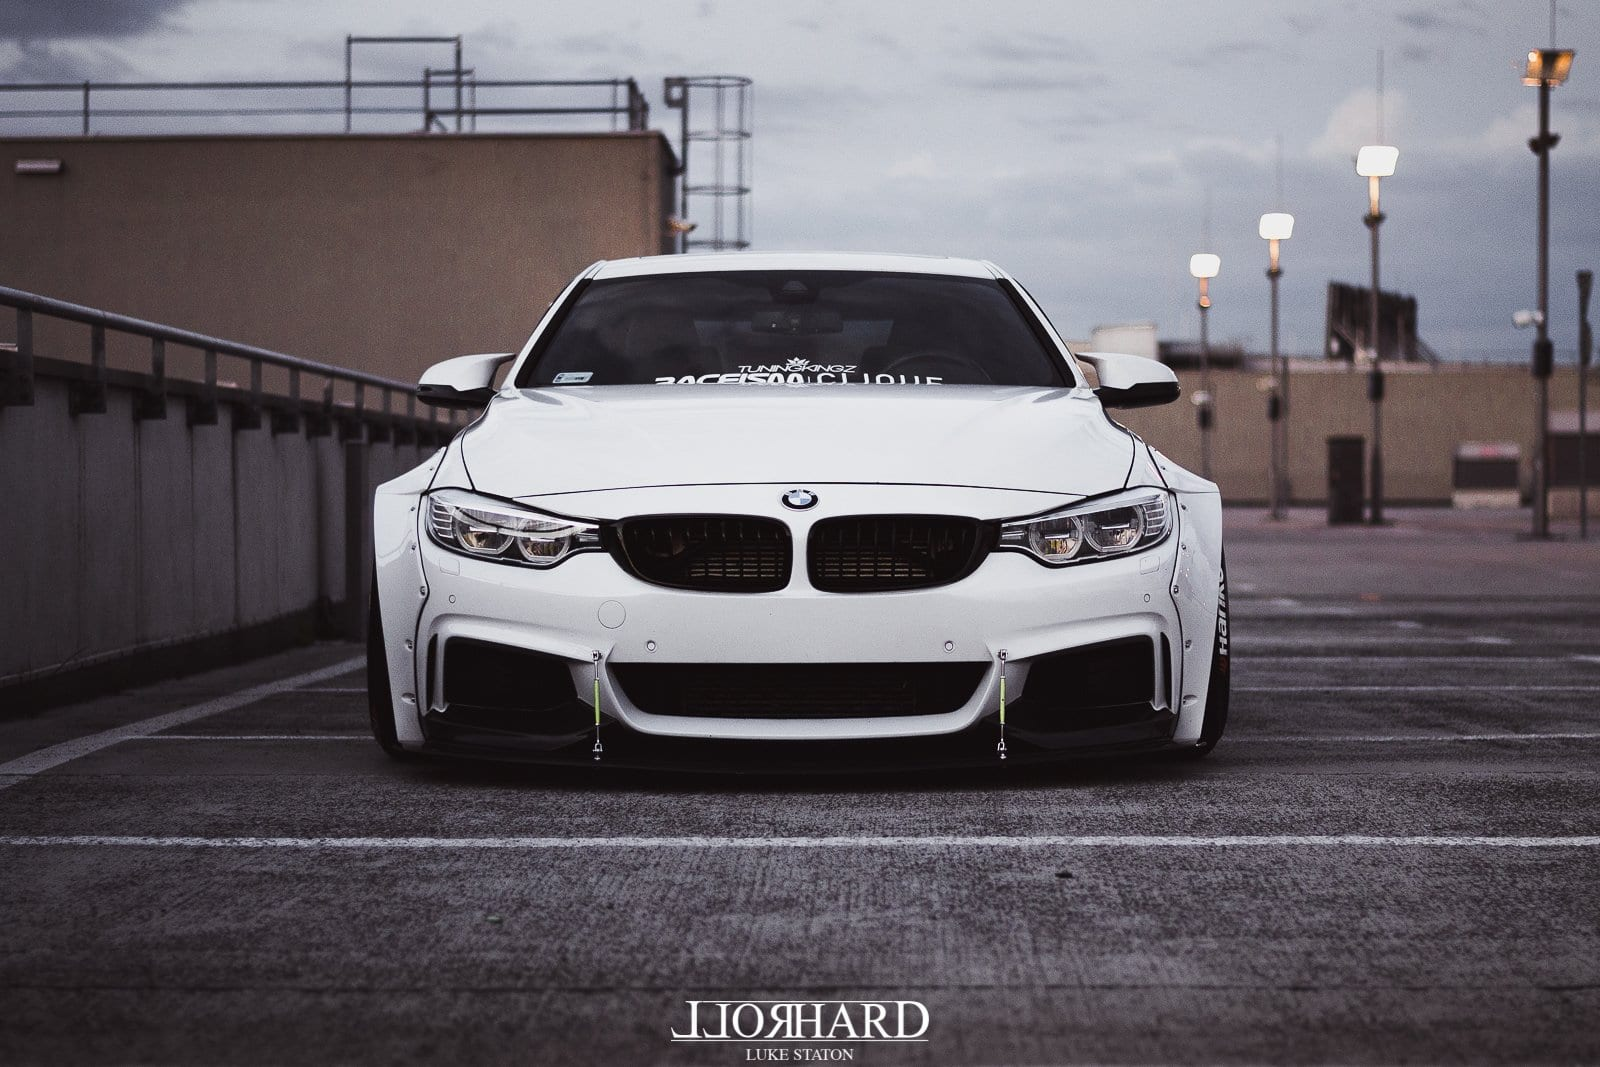 BMW 4series (F32, F33, 335i, 440i) SR66 wide body kit